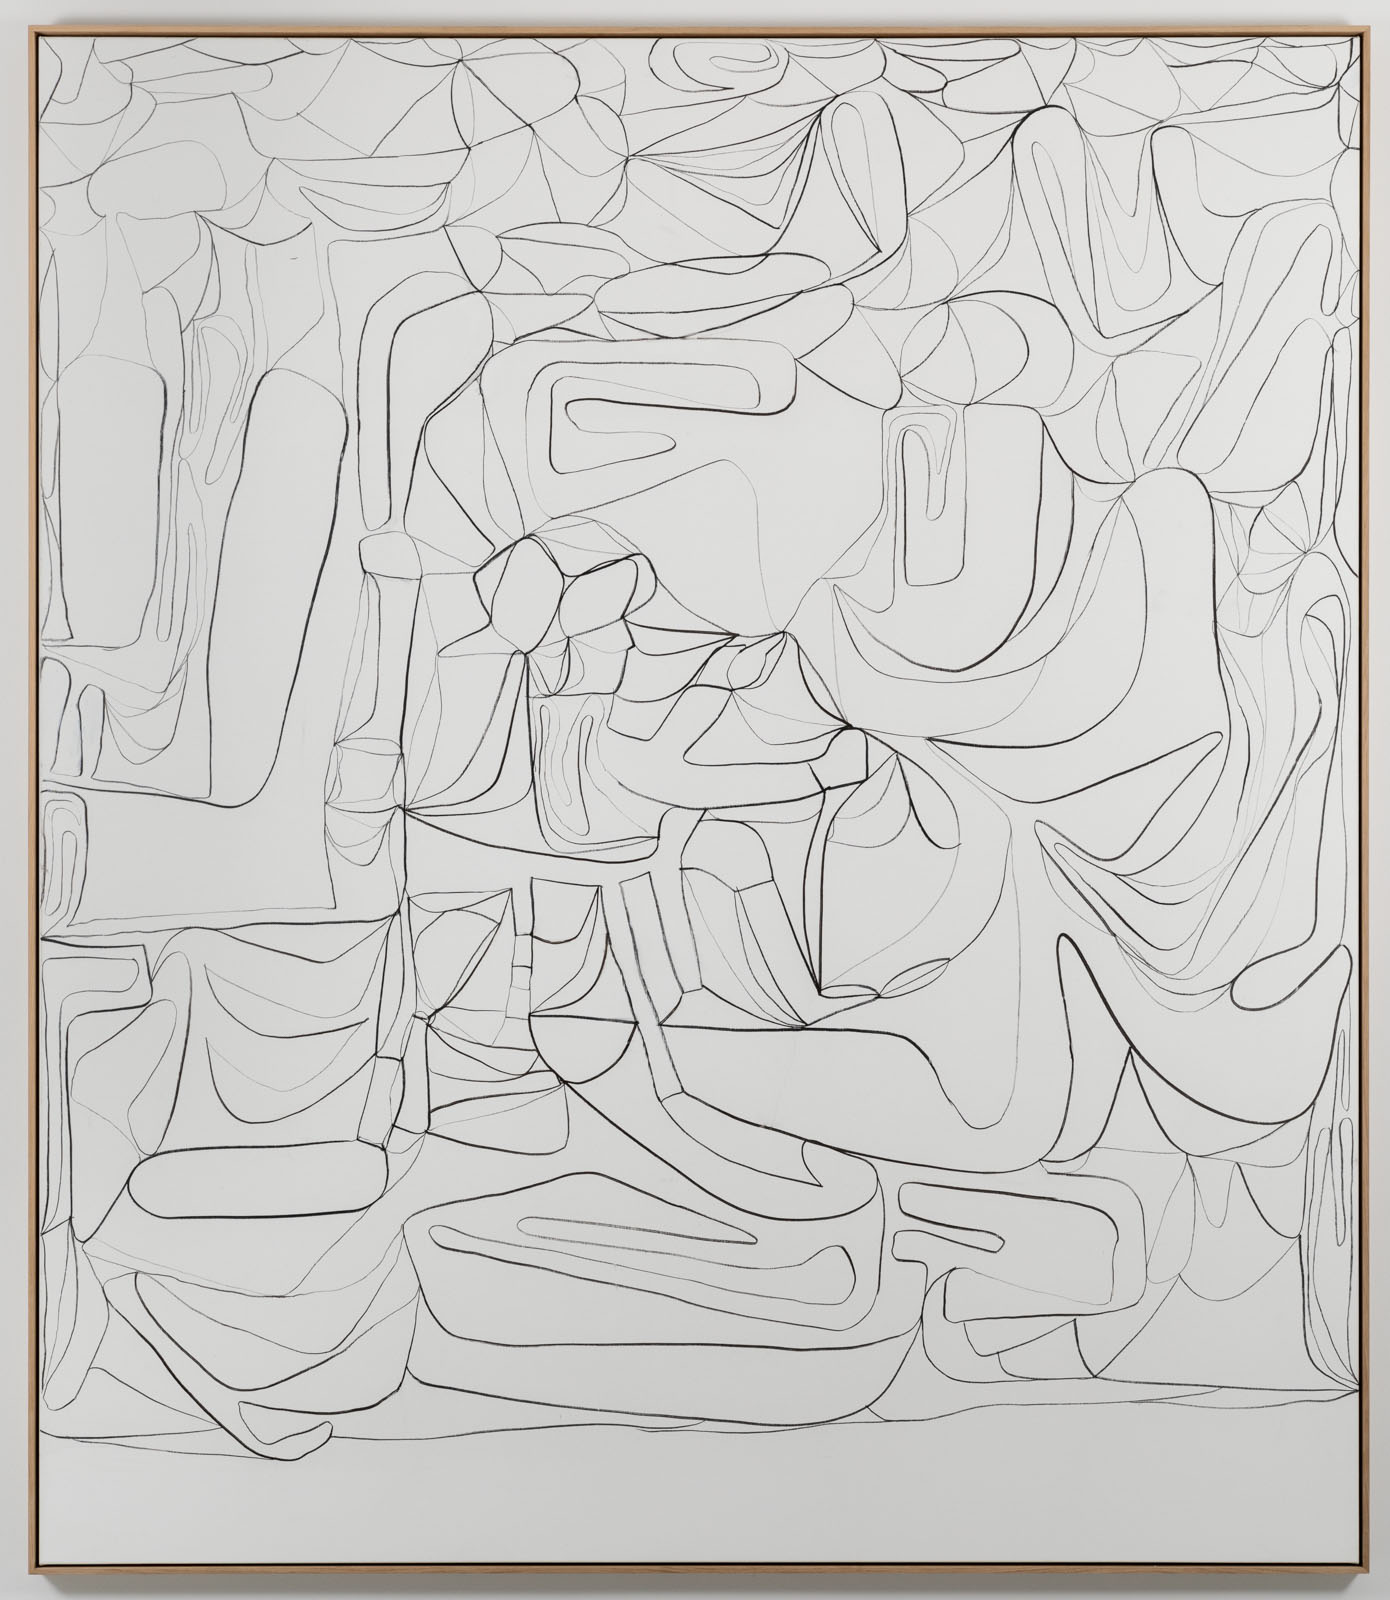 The Inventarium Drawing No. 03, 2018. Charcoal on canvas, 243 x 210 cm